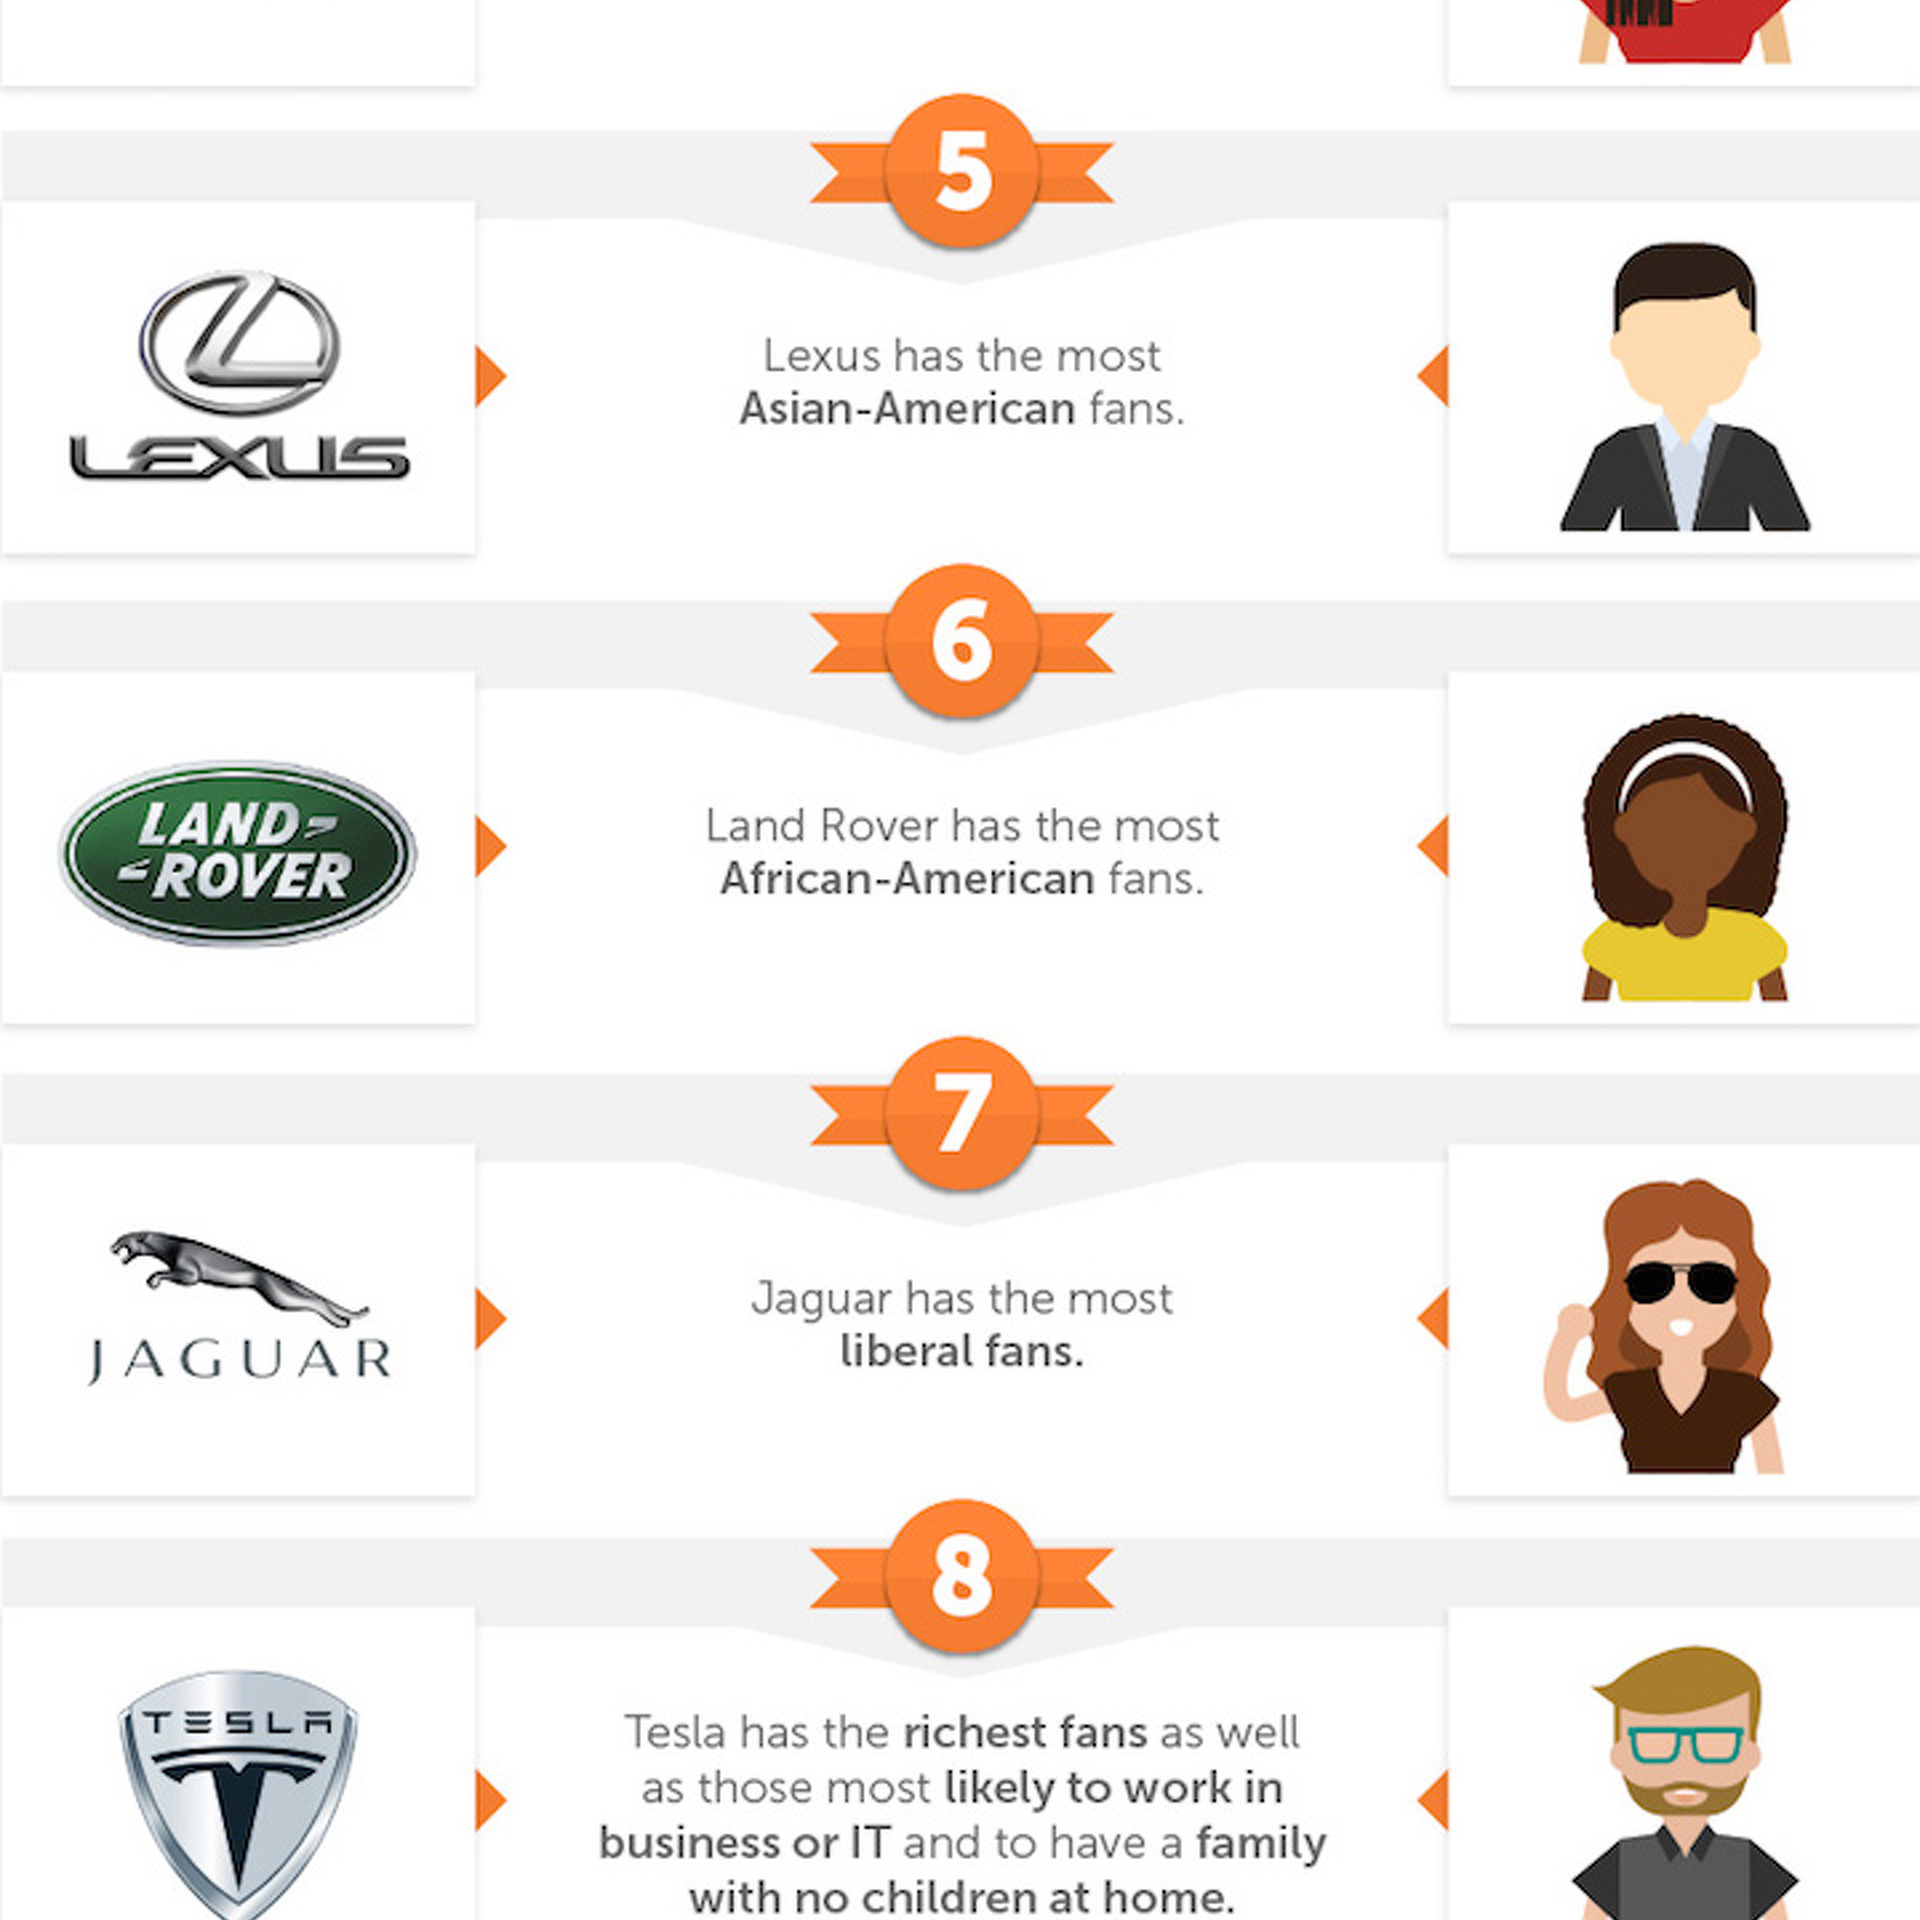 The 10 Most Popular Car Brands on Facebook and How They Compare